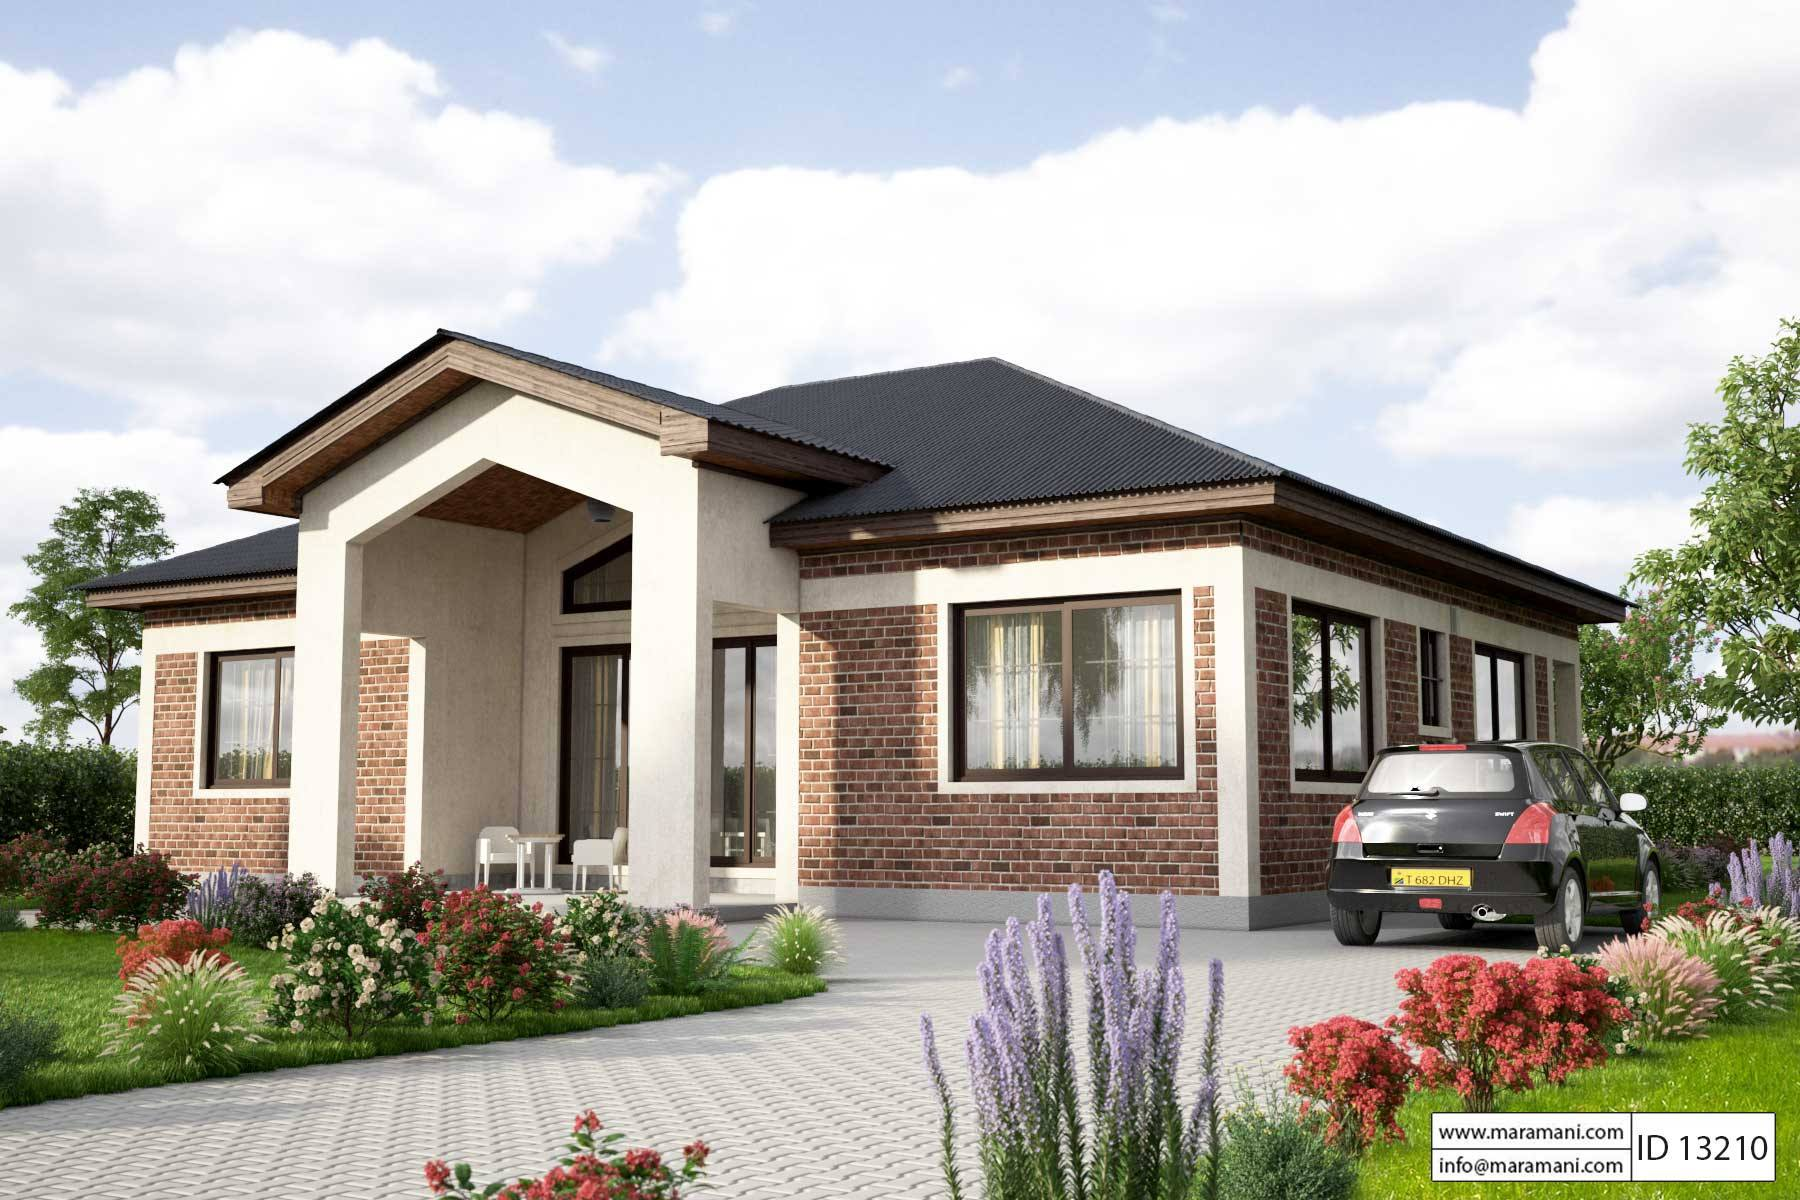 Simple House Design Id 13210 House Plans By Maramani